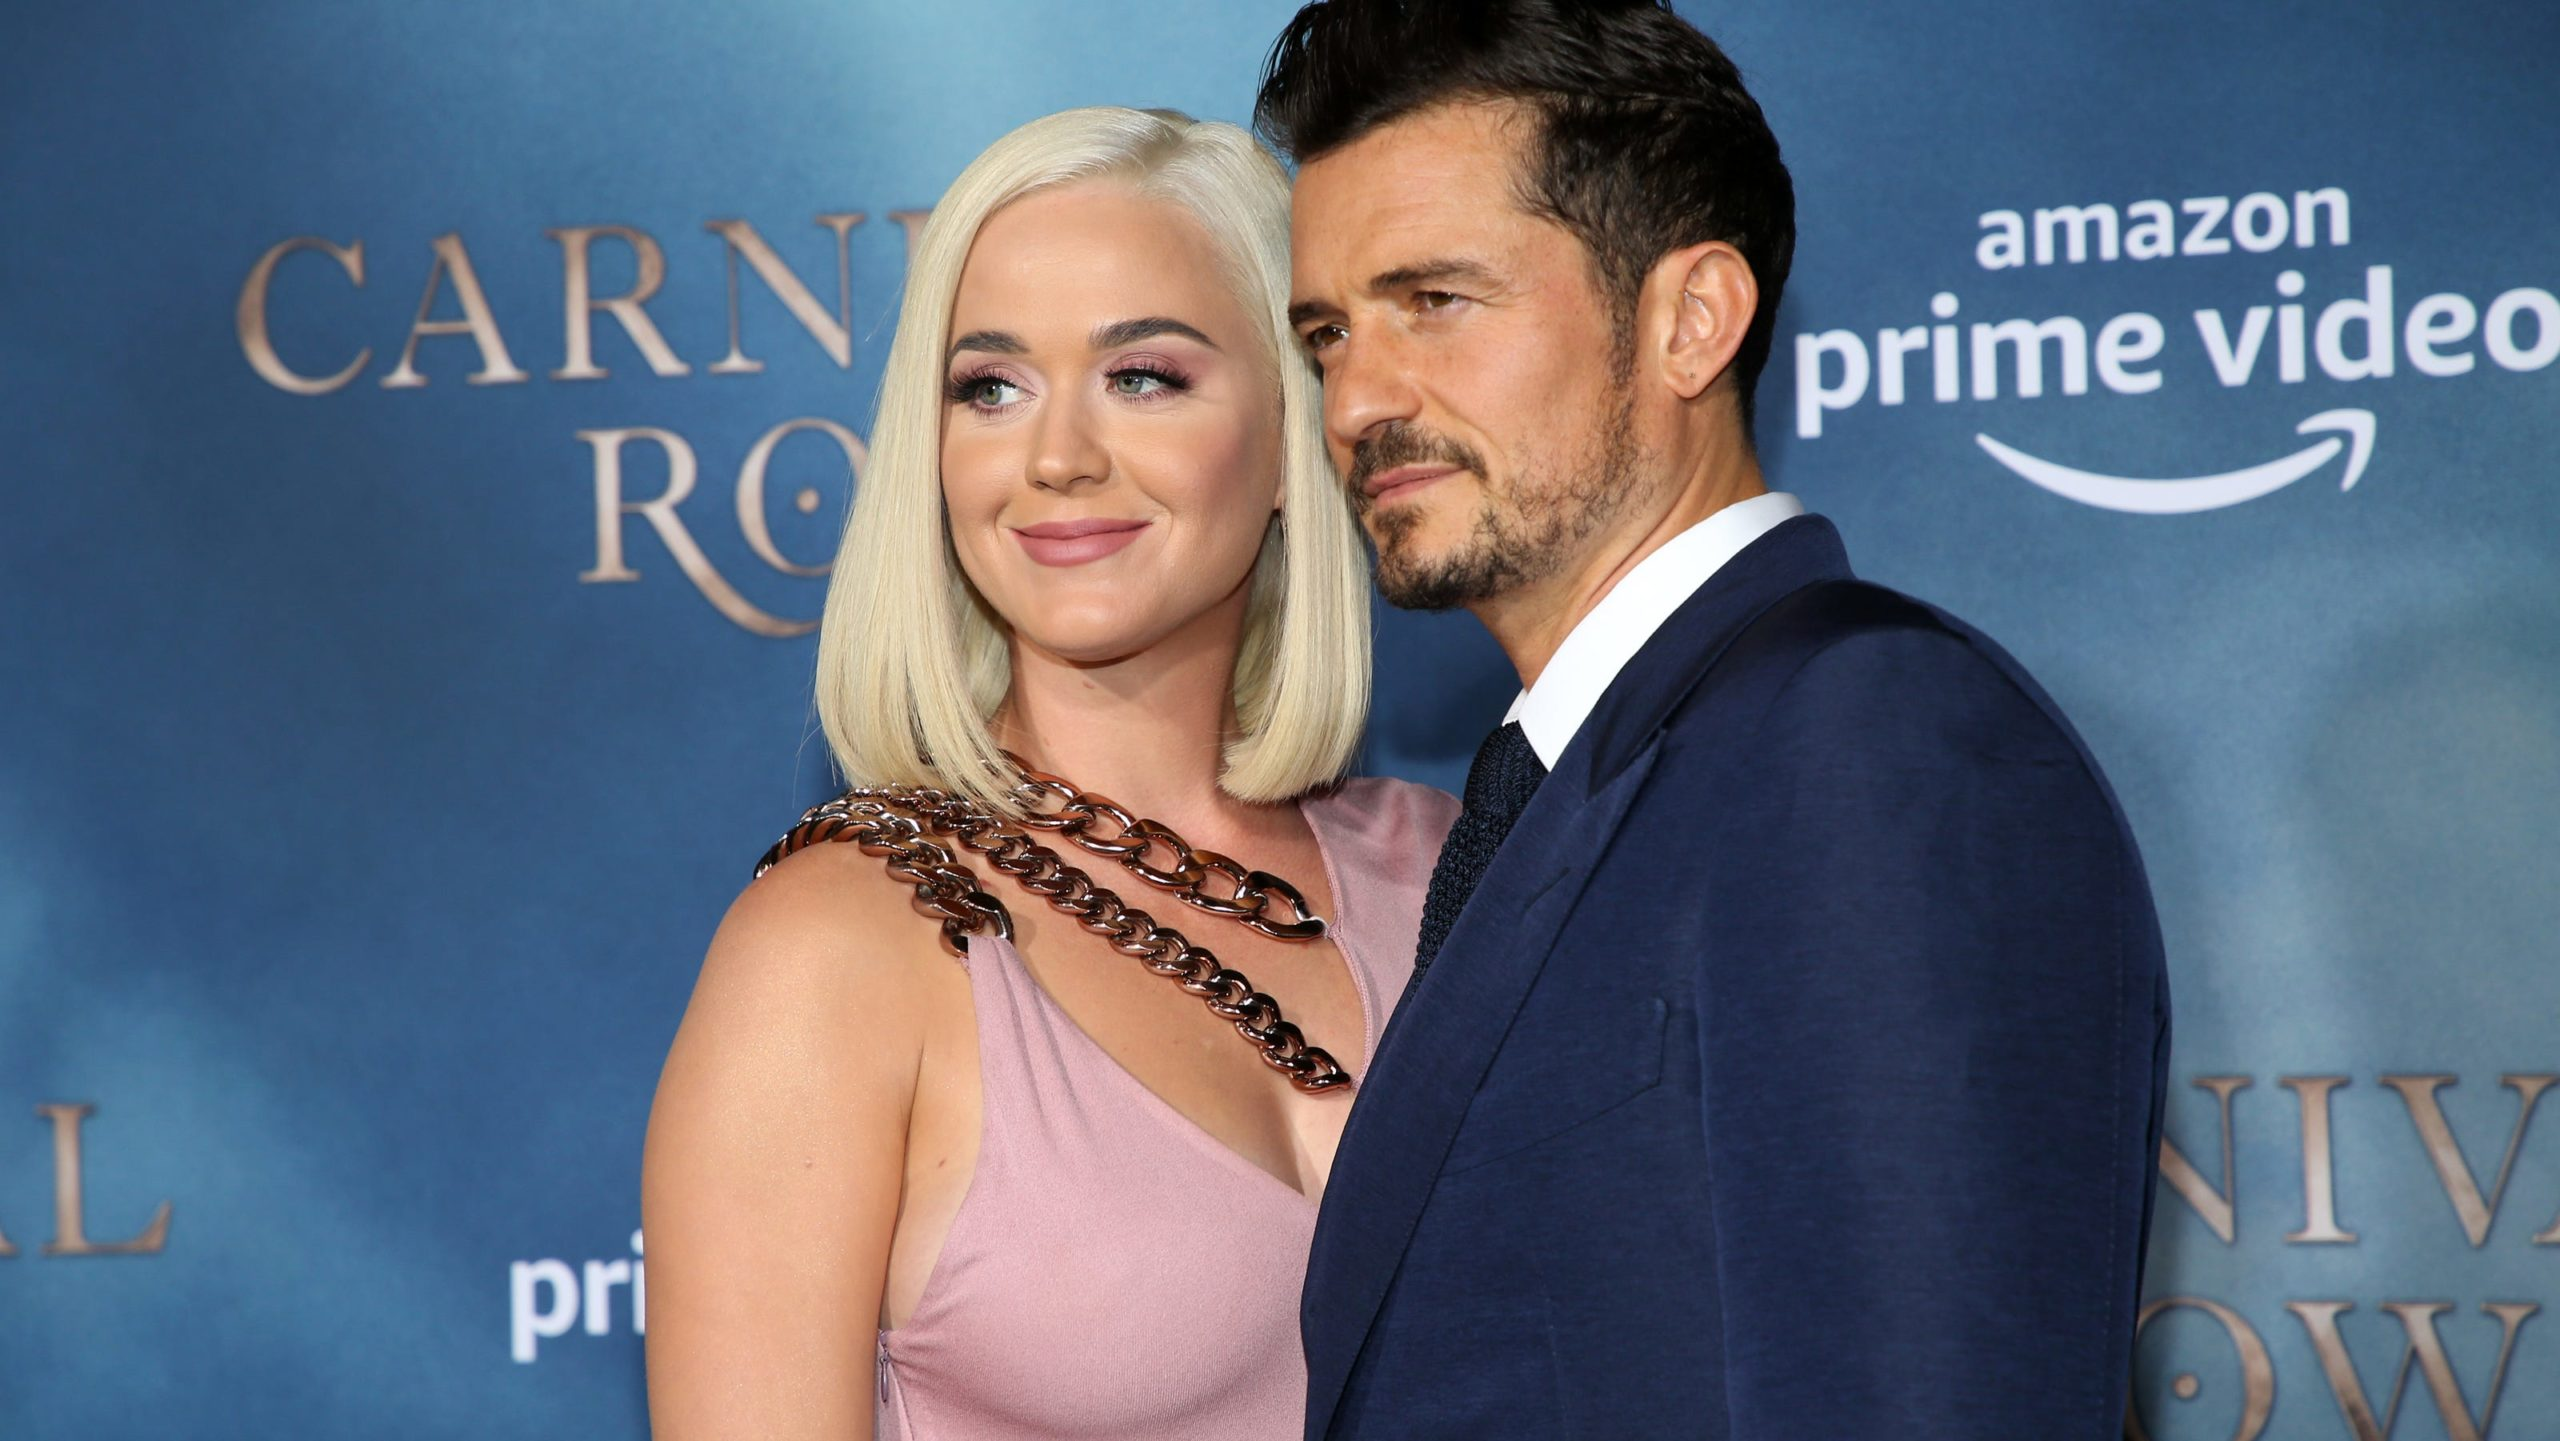 Katy Perry to Orlando Bloom to have an Egyptian Wedding